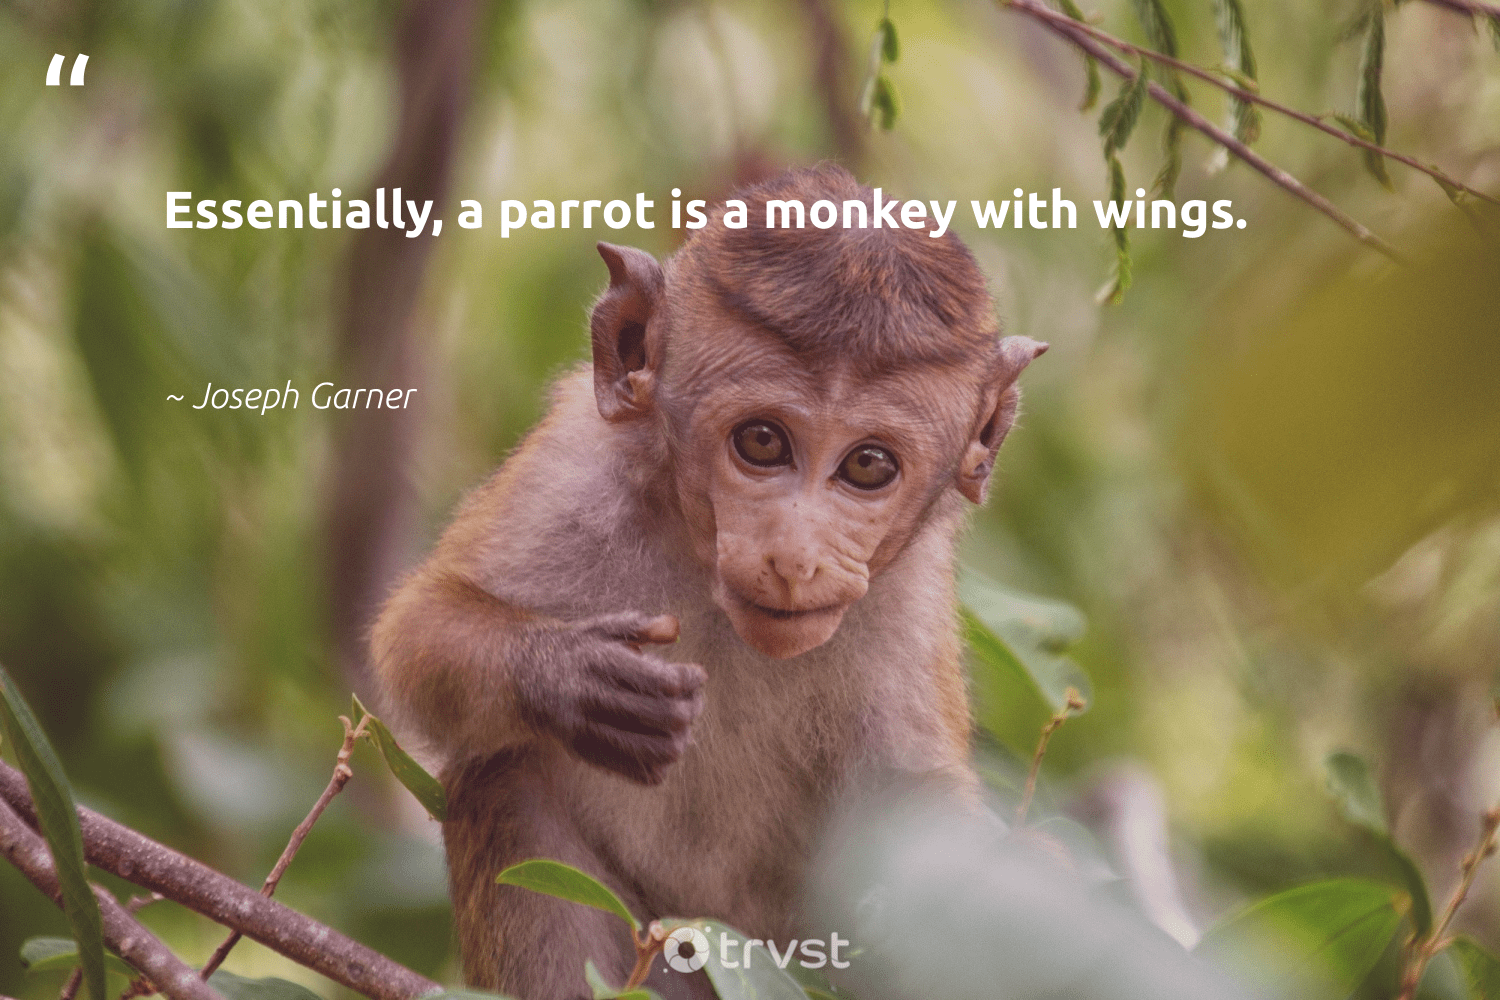 """Essentially, a parrot is a monkey with wings.""  - Joseph Garner #trvst #quotes #parrot #monkey #protectnature #ecoconscious #wild #dotherightthing #biodiversity #bethechange #majesticwildlife #gogreen"